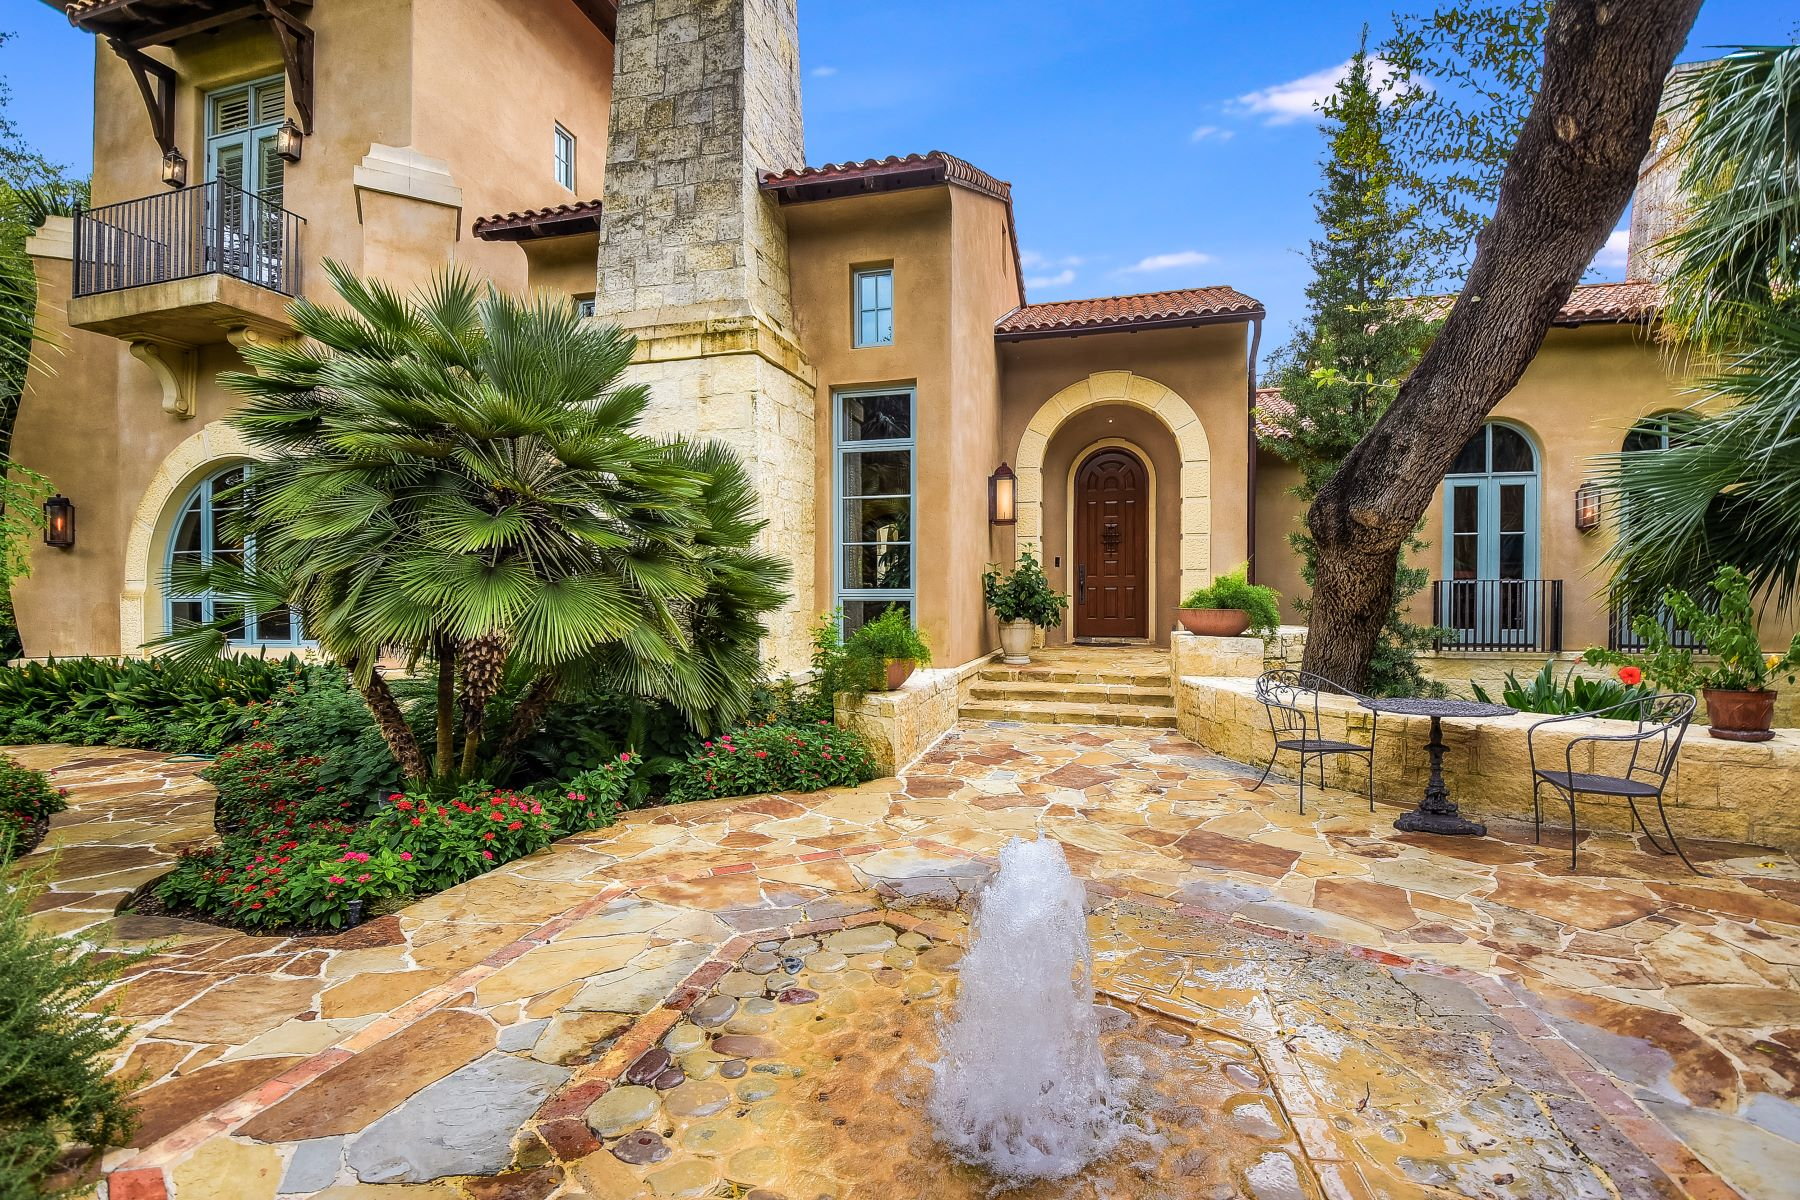 Single Family Homes for Active at Italian Style Estate With Tropical Landscape 734 College Boulevard San Antonio, Texas 78209 United States